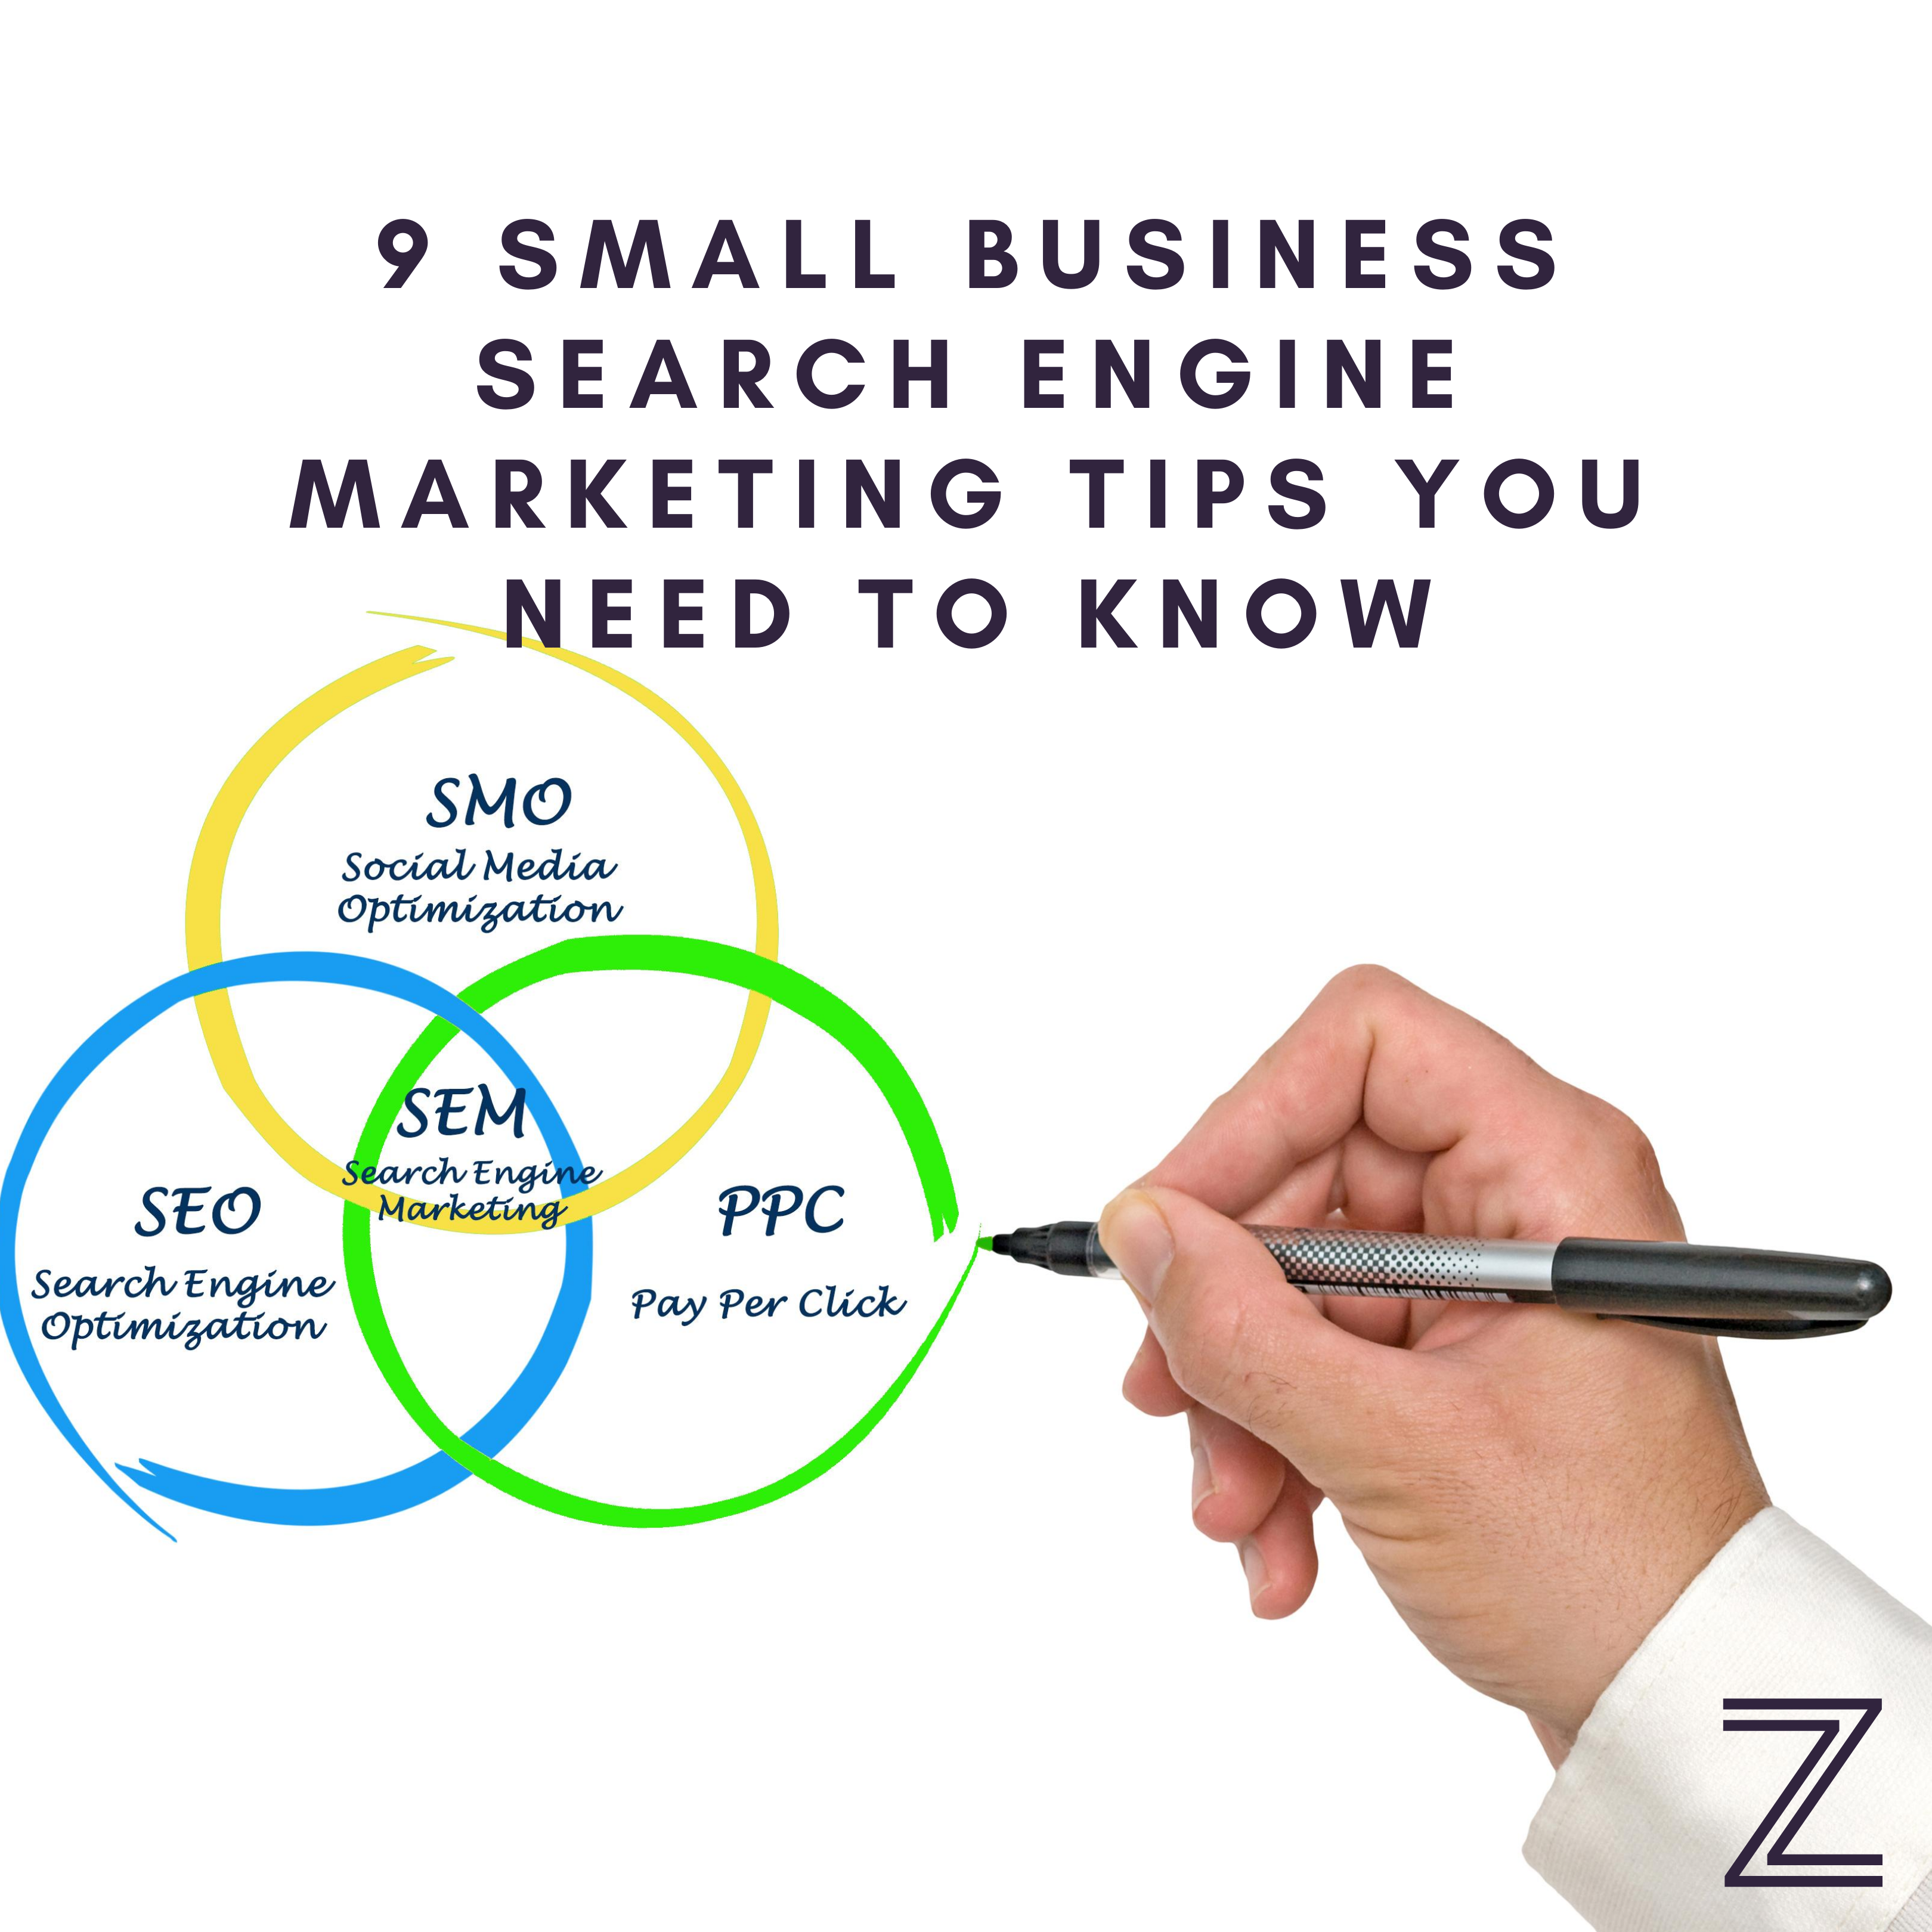 9 Small Business Search Engine Marketing Tips You Need to Know